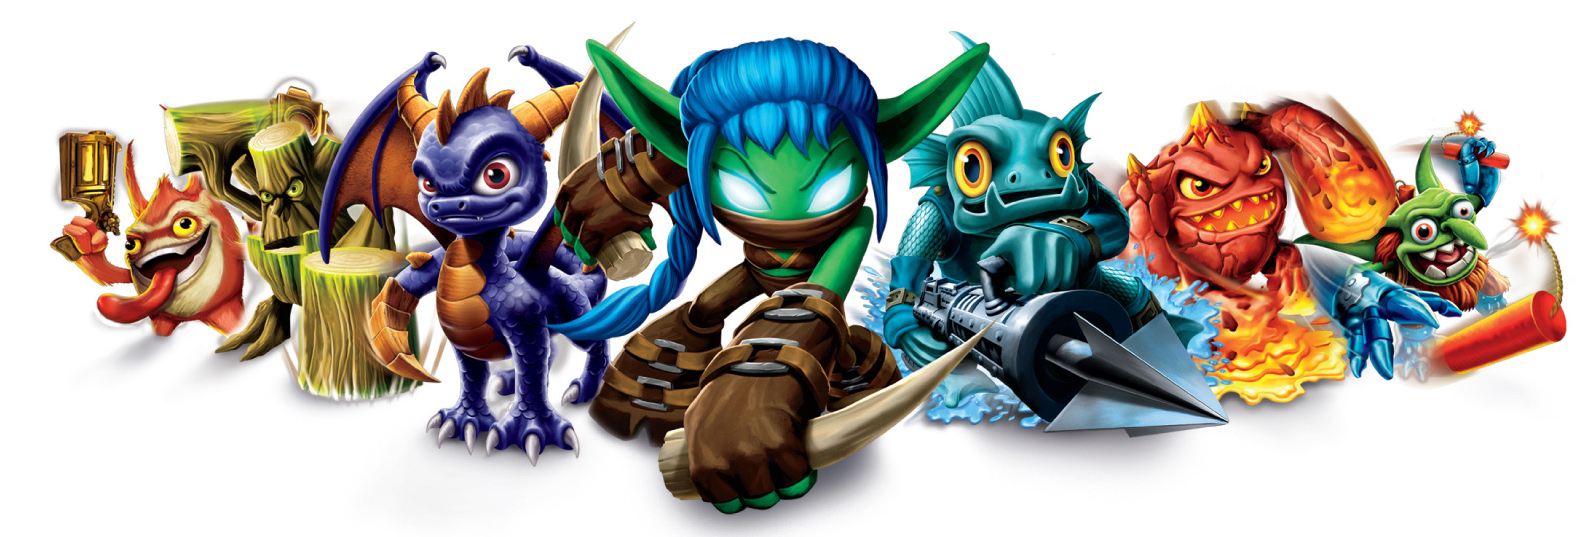 Skylanders Publish With Glogster